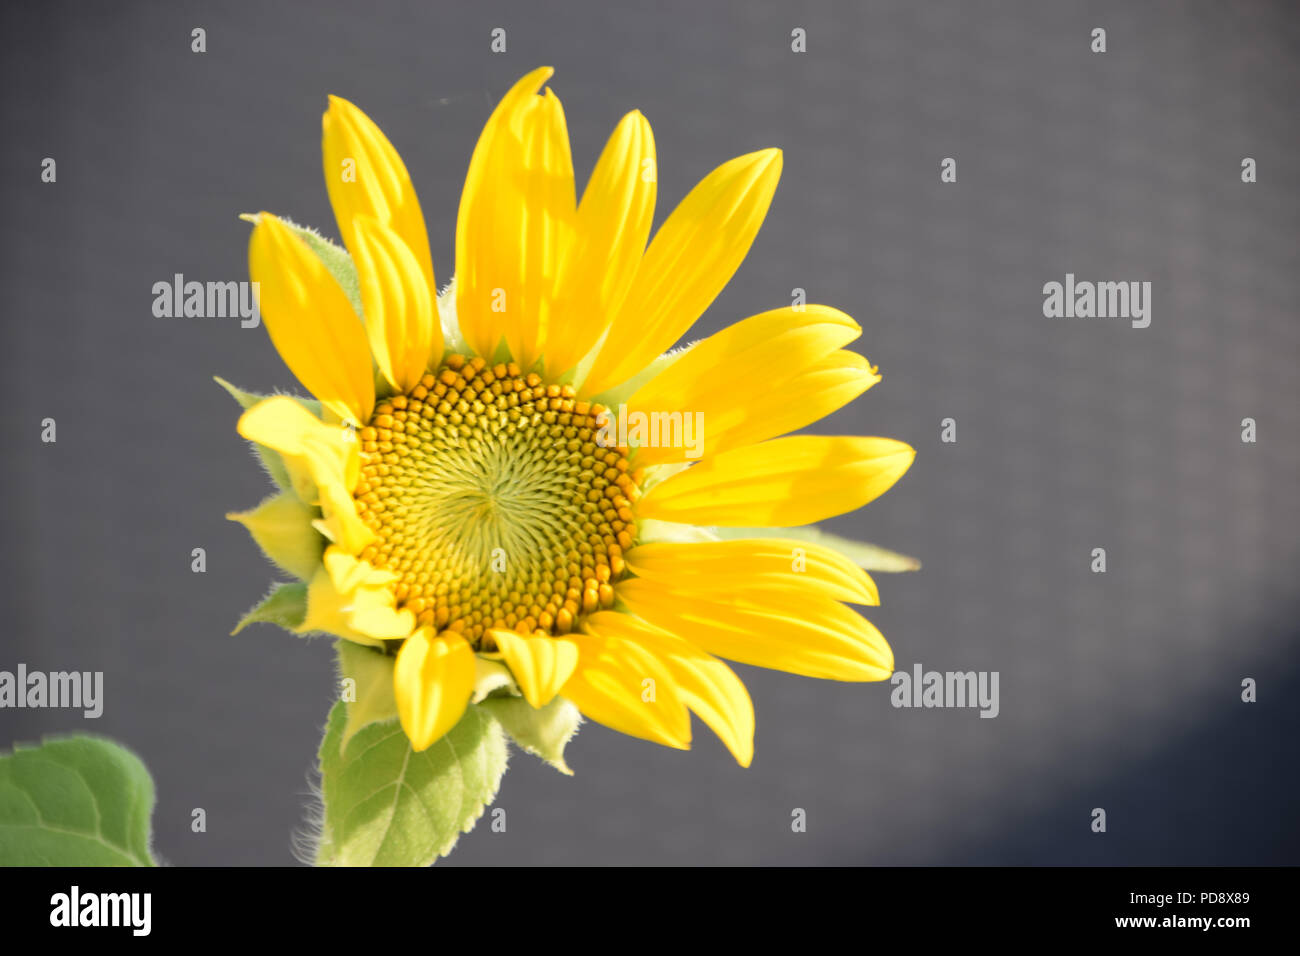 sunflower with yellow petals and hairy leaves, small species of helianthus annuus bloom in august - Stock Image